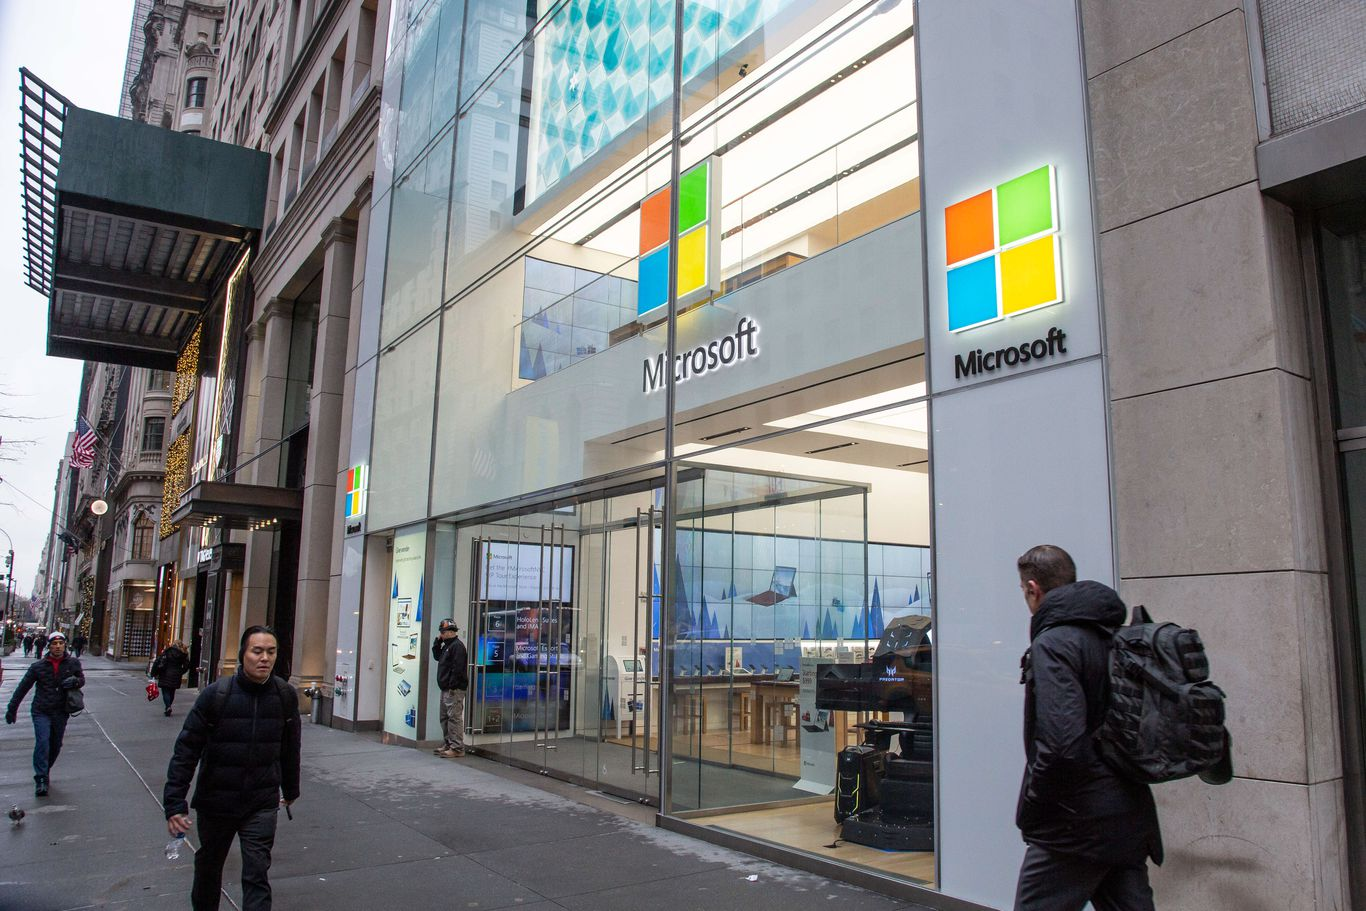 Microsoft to close all but 4 retail stores thumbnail